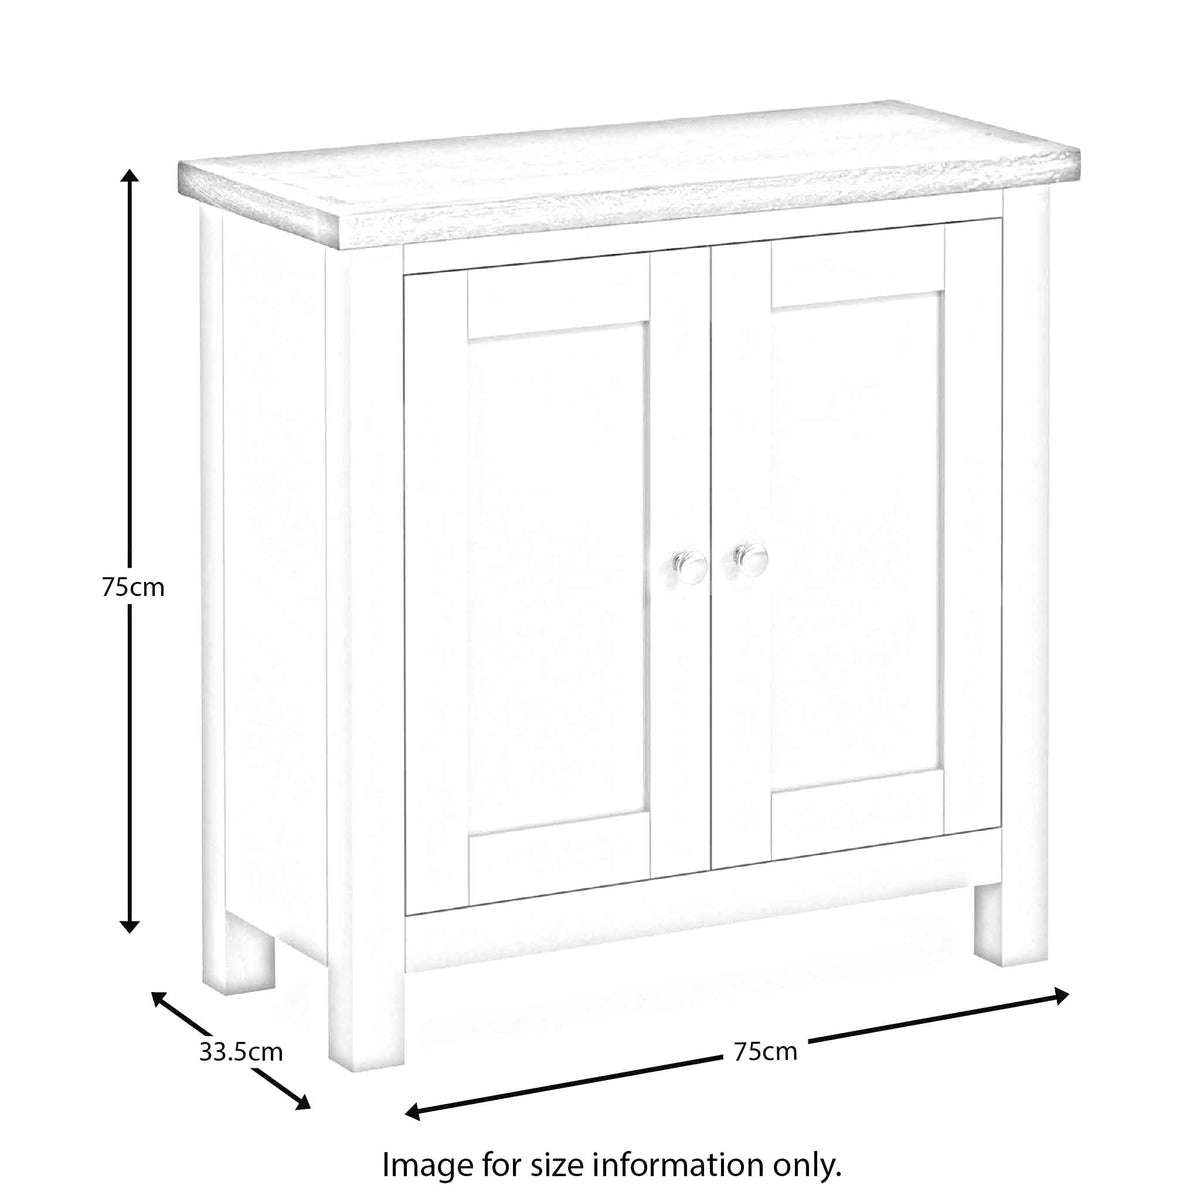 Farrow Grey Cupboard dimensions